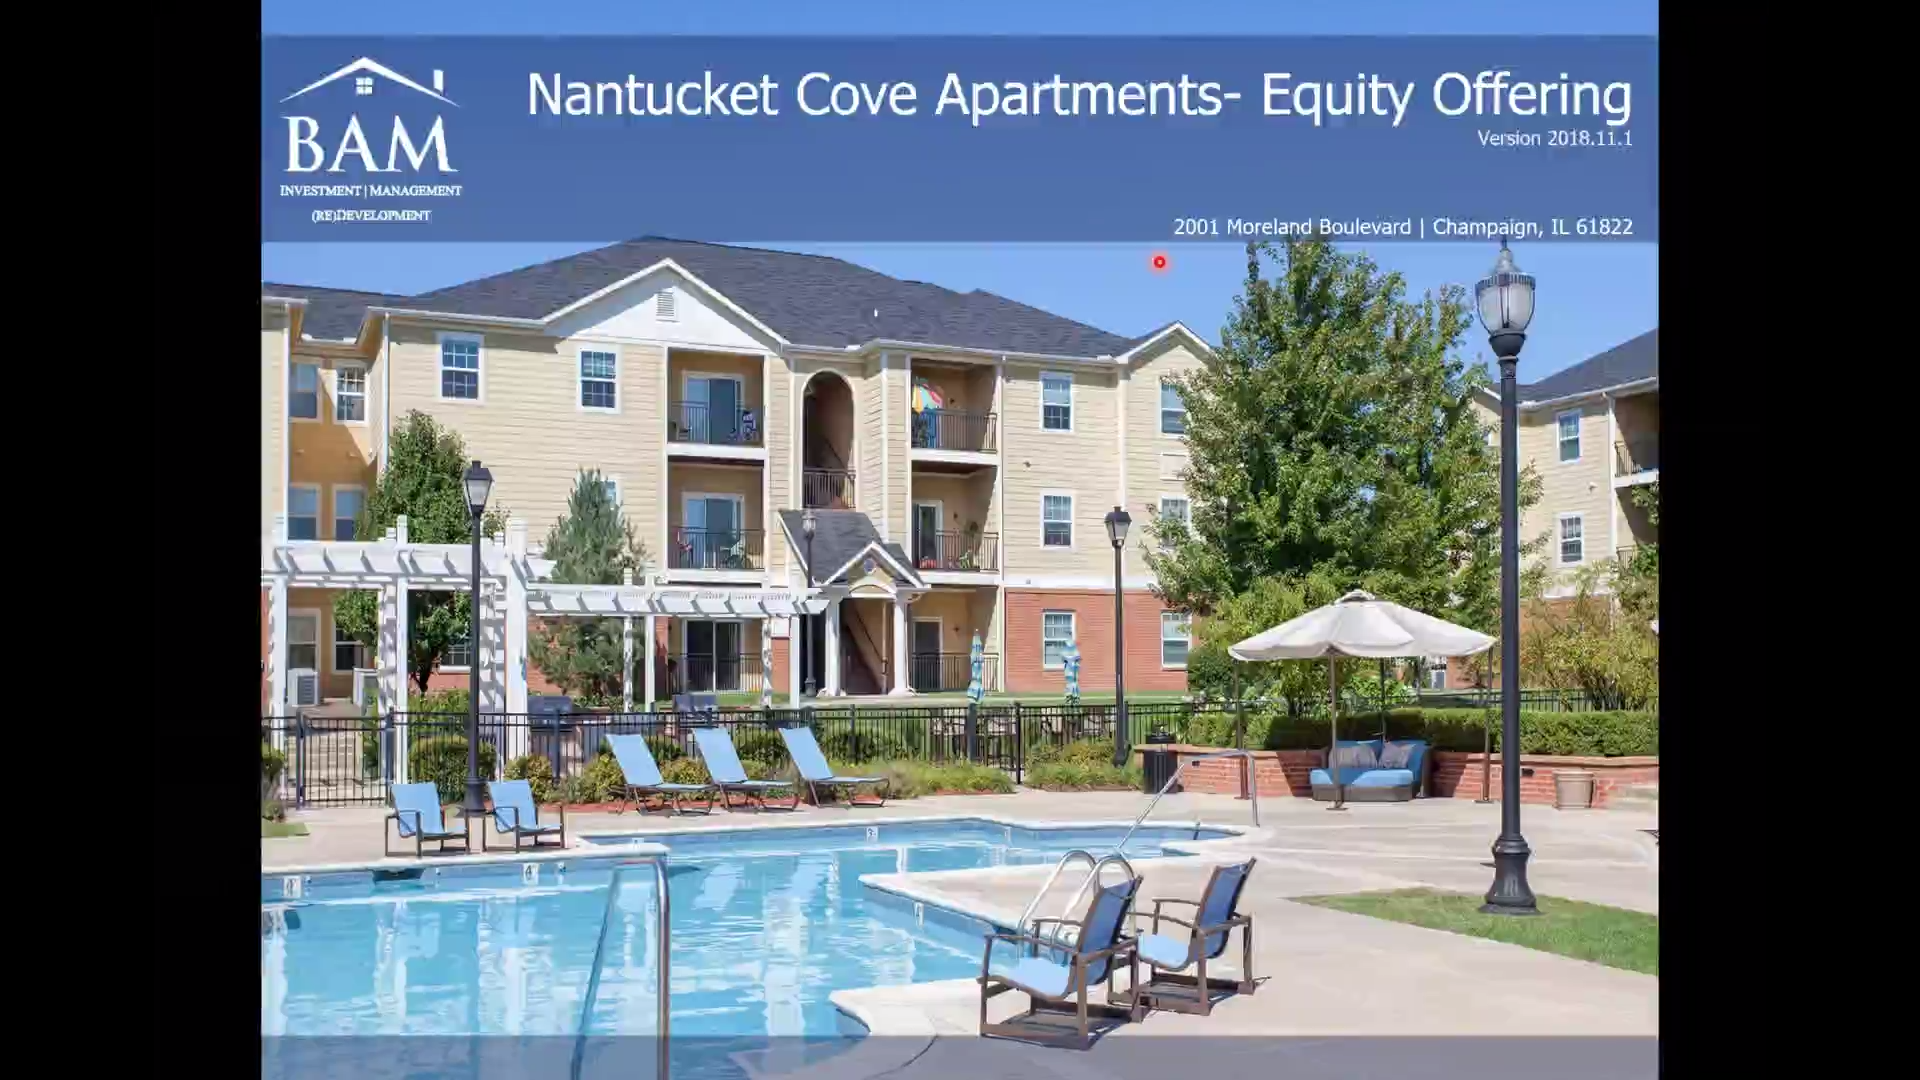 Investment Video - Nantucket Cove Apartments